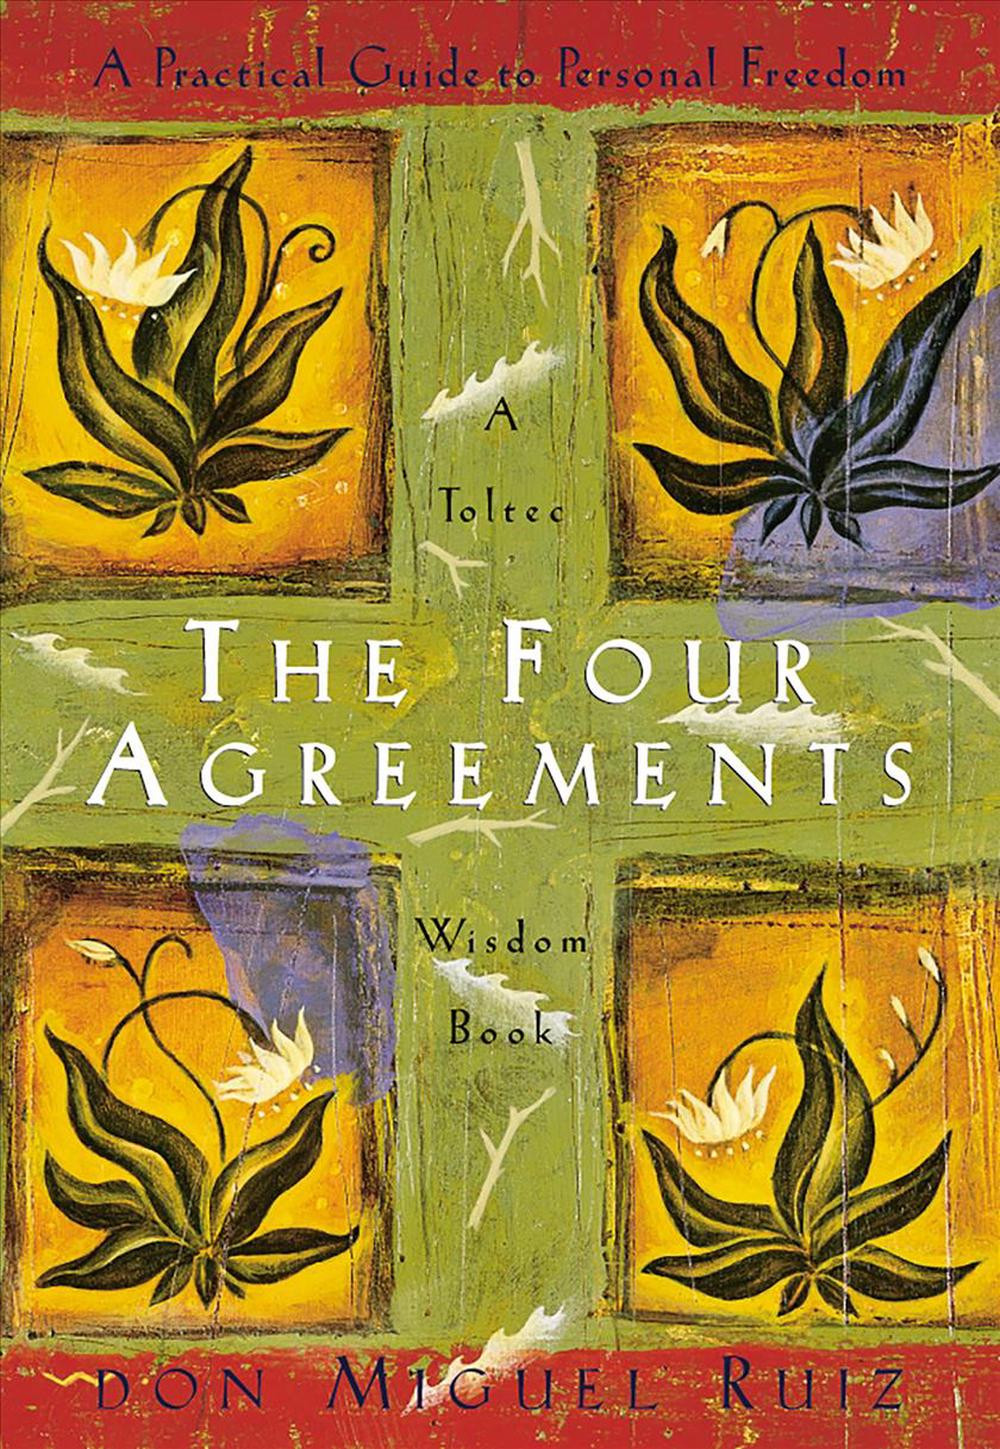 The four agreements by Don Miguel Ruiz book cover